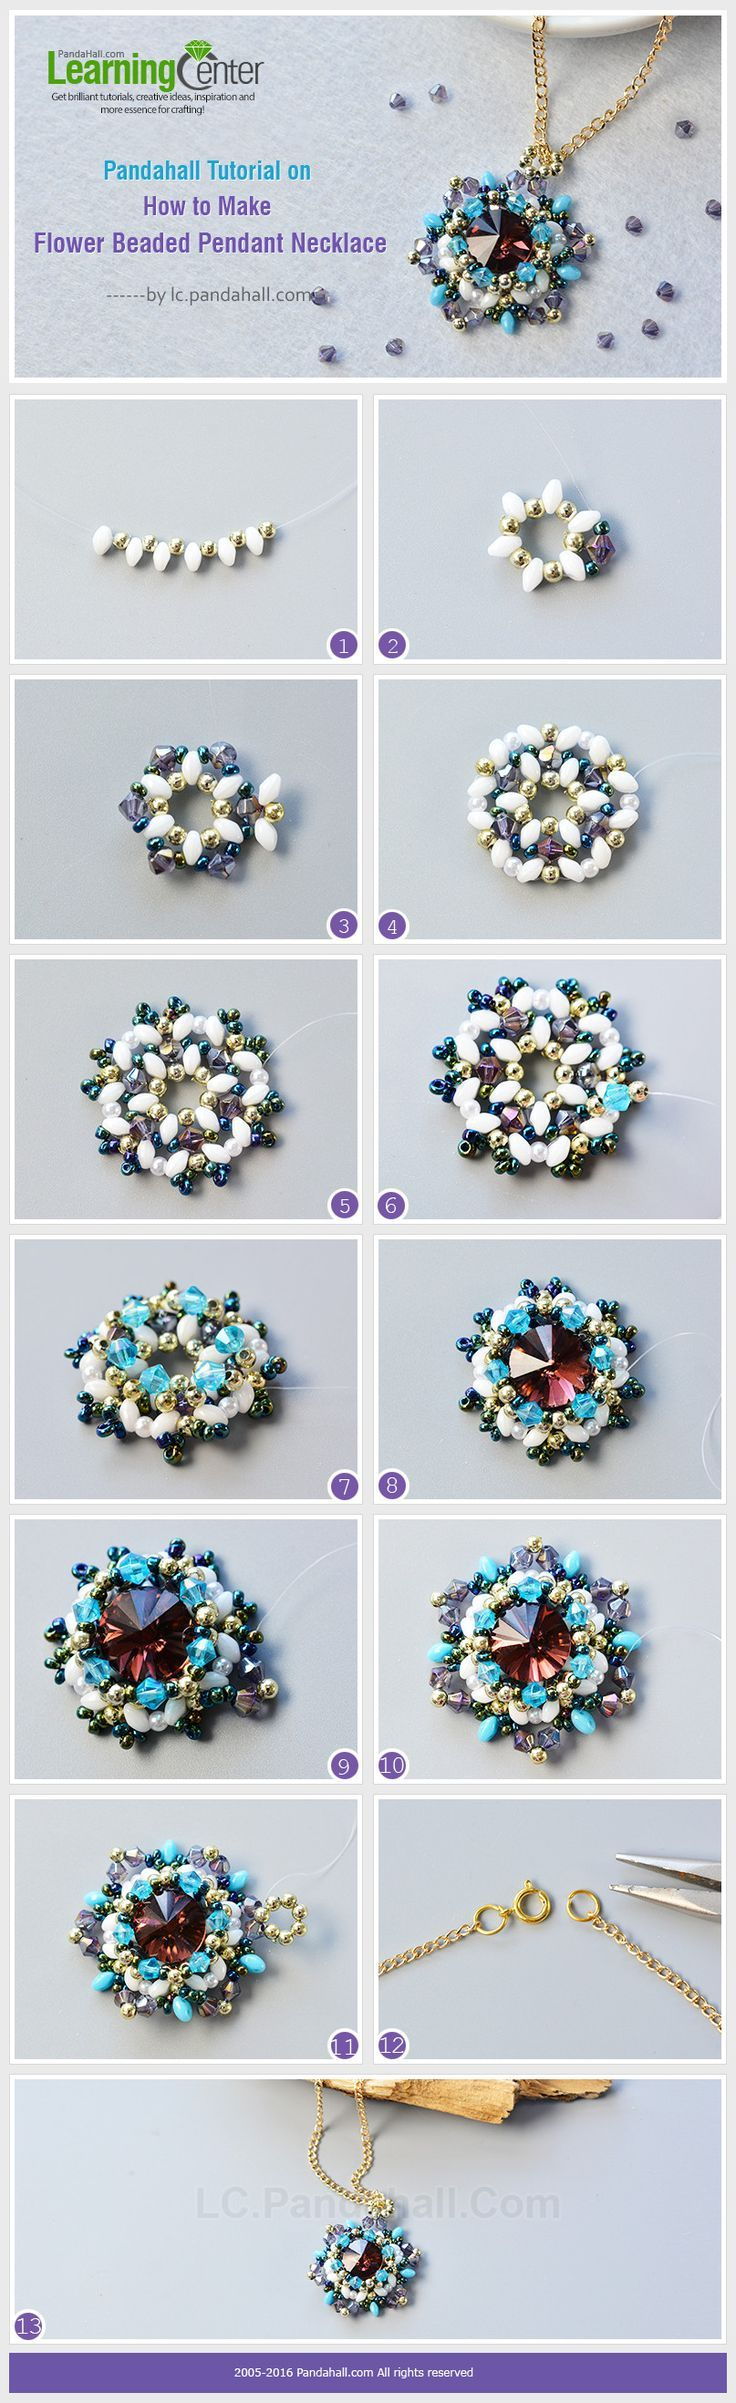 Poppy of beads: weaving schemes and step-by-step master class 78